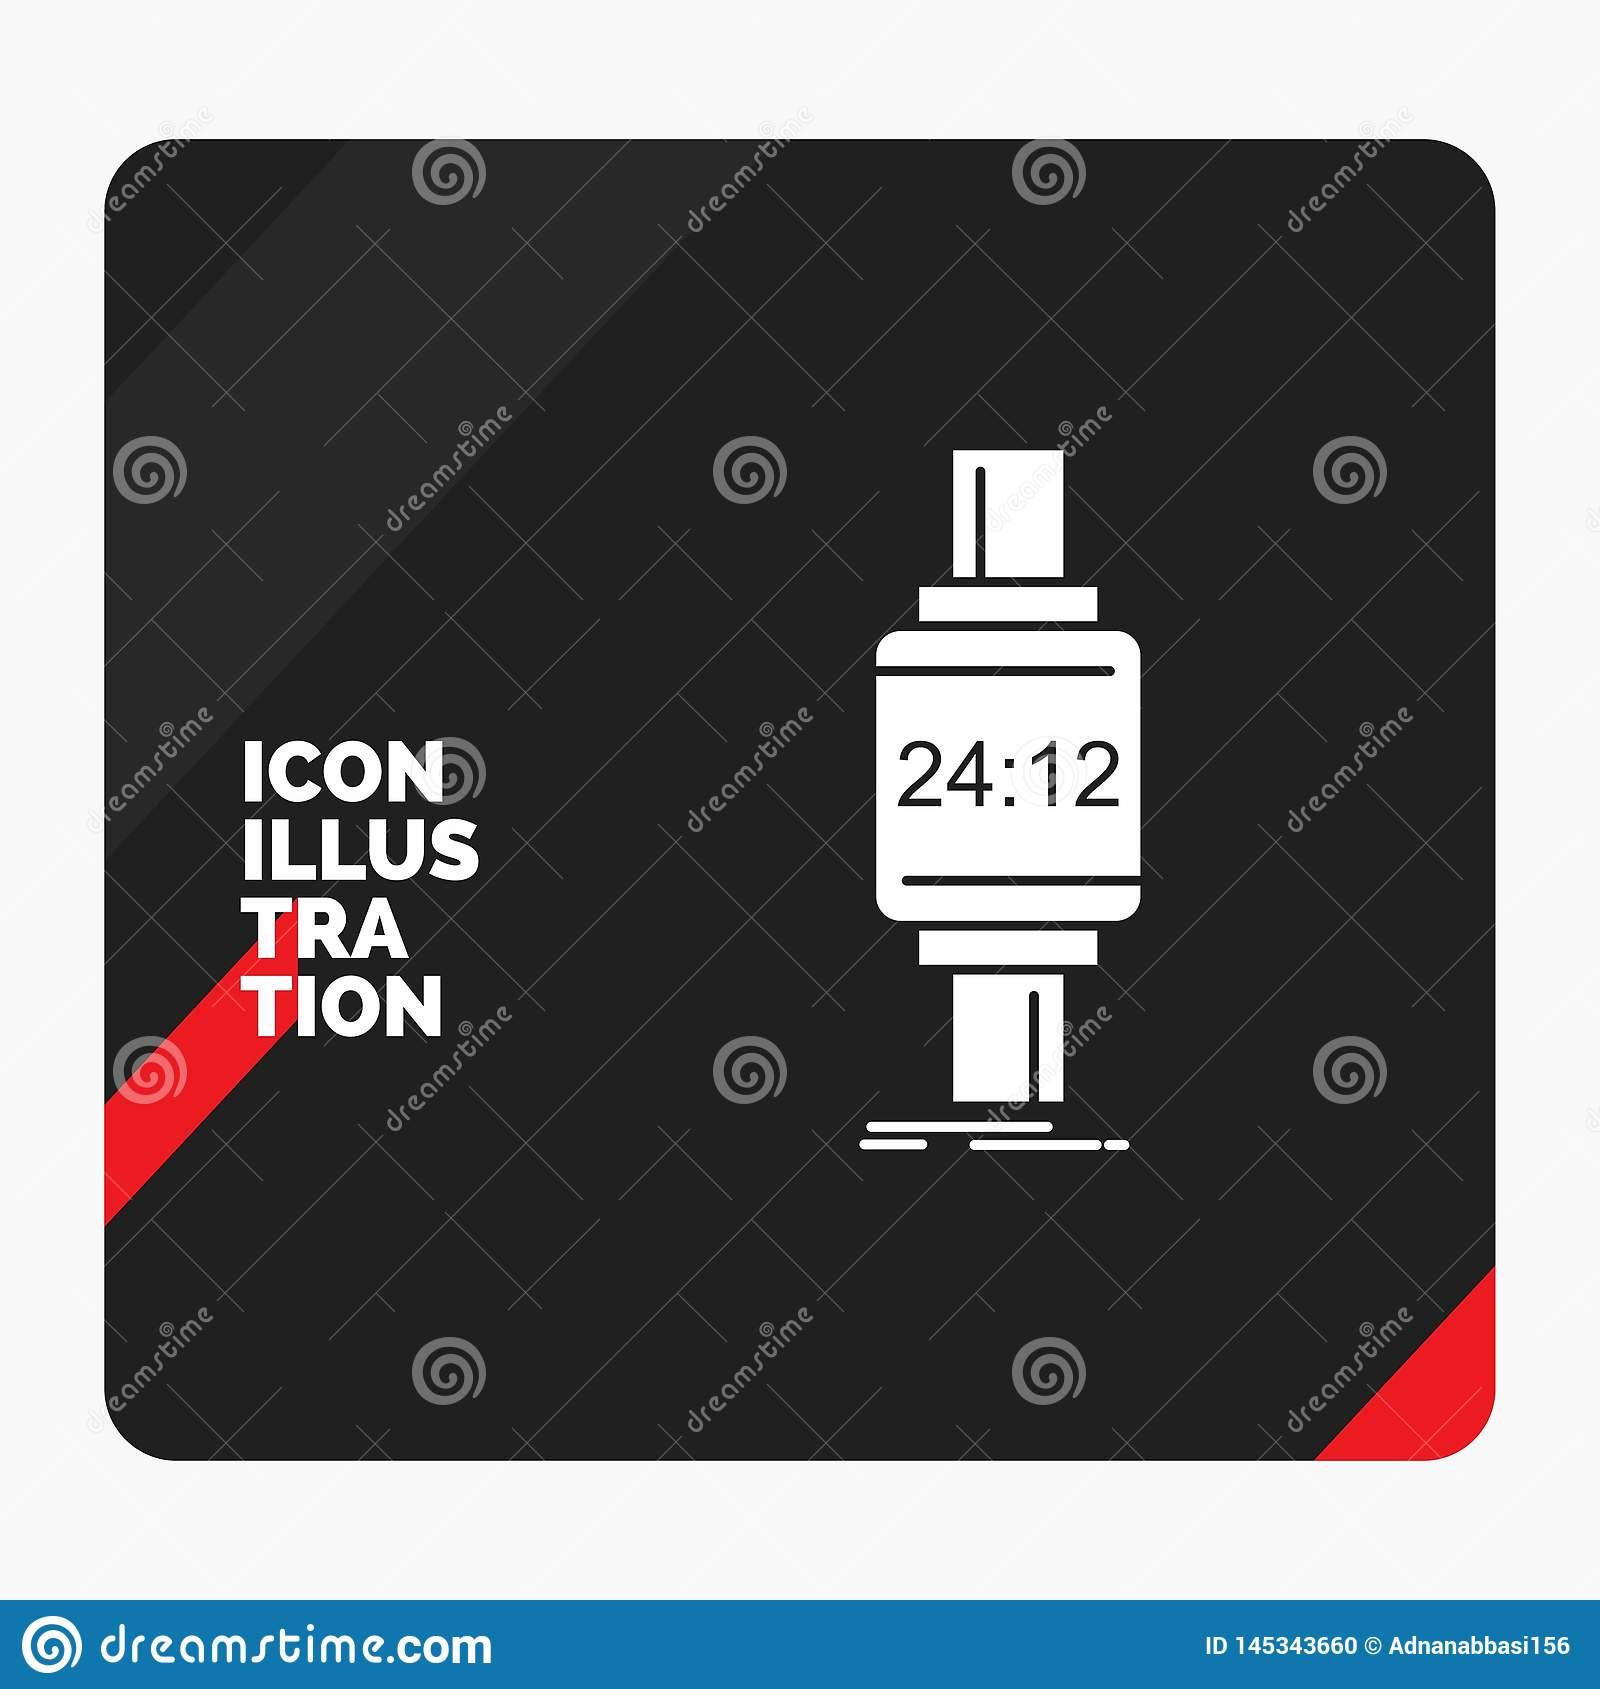 Red And Black Creative Presentation Background For Smart Watch